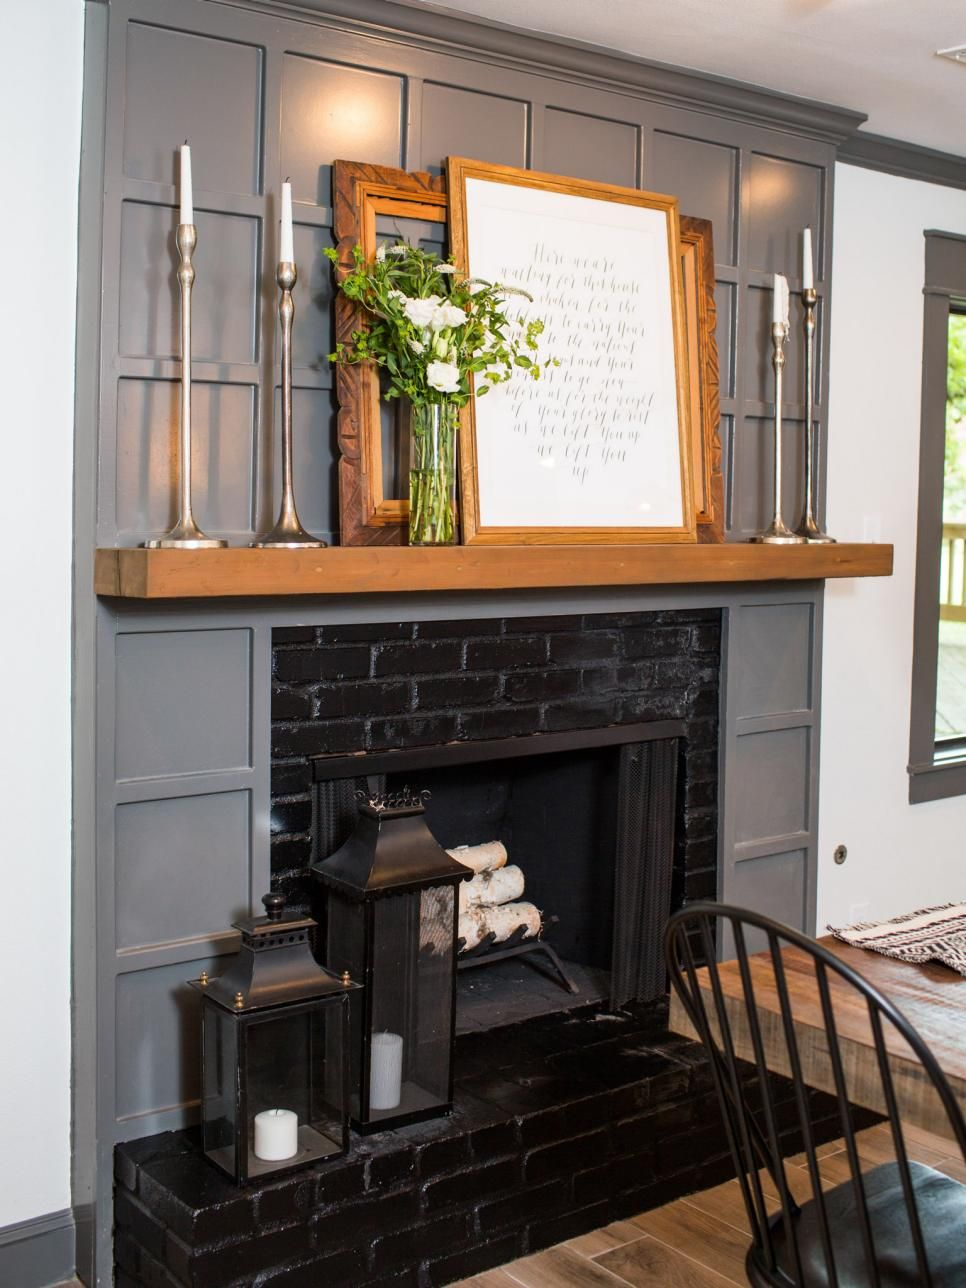 The Existing Brick Fireplace Was Retained But Updated With